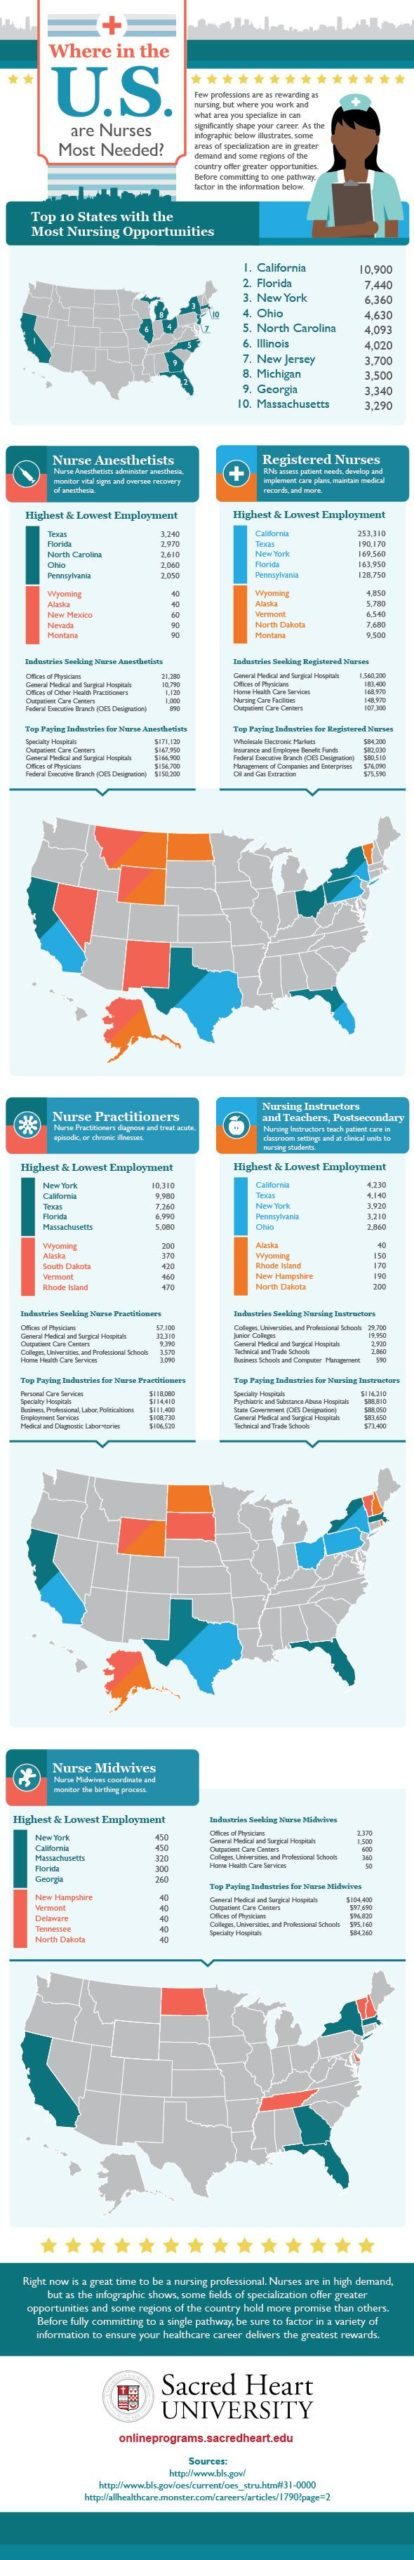 Infographic that shows where nursing professionals have the most career opportunities in the U.S.